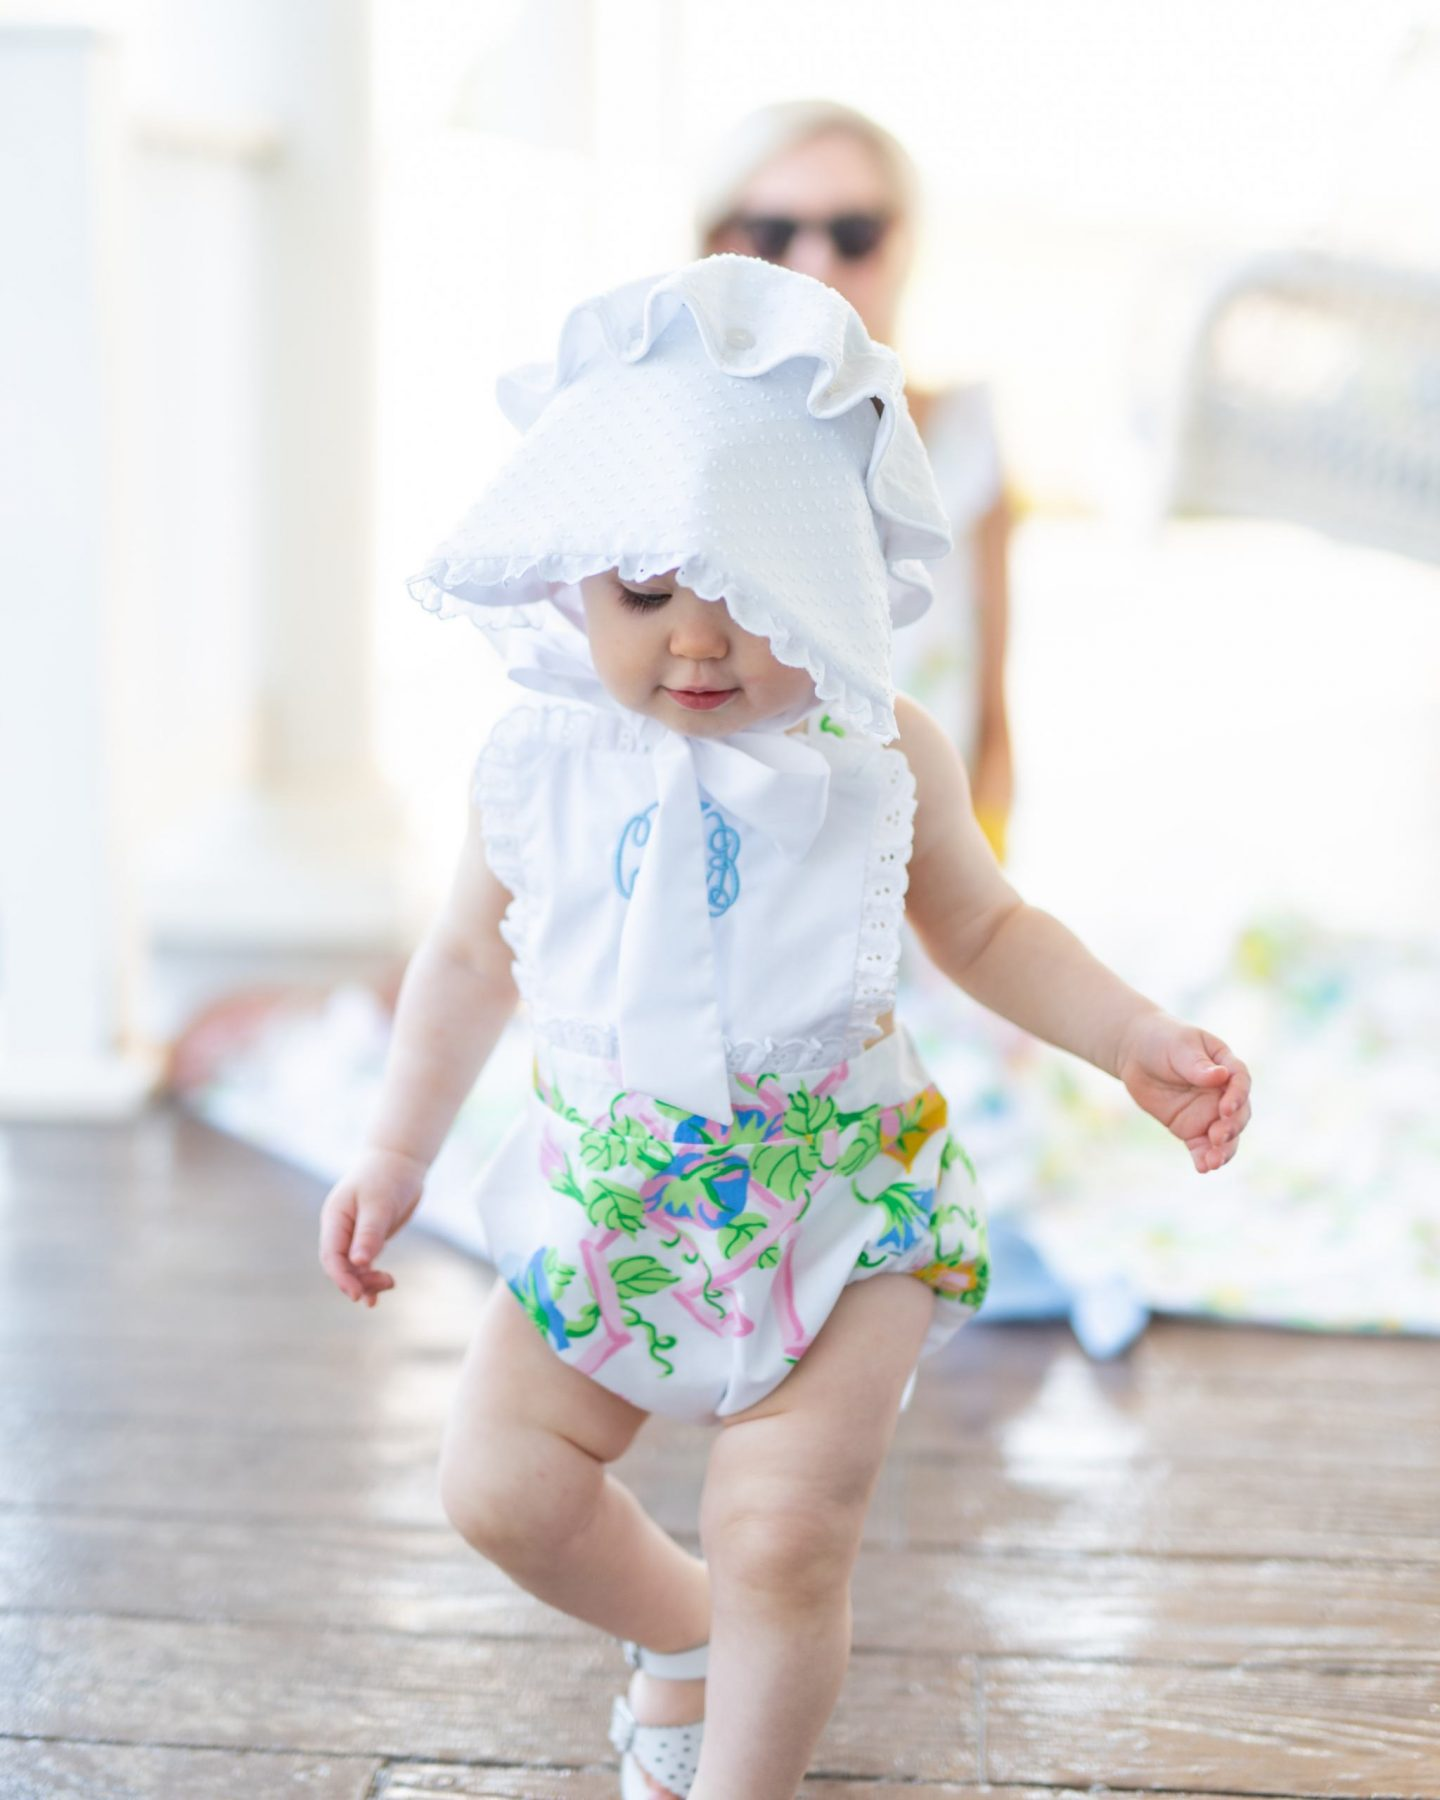 baby girl in a floral sunsuit and white bonnet playing on the porch in the sunlight